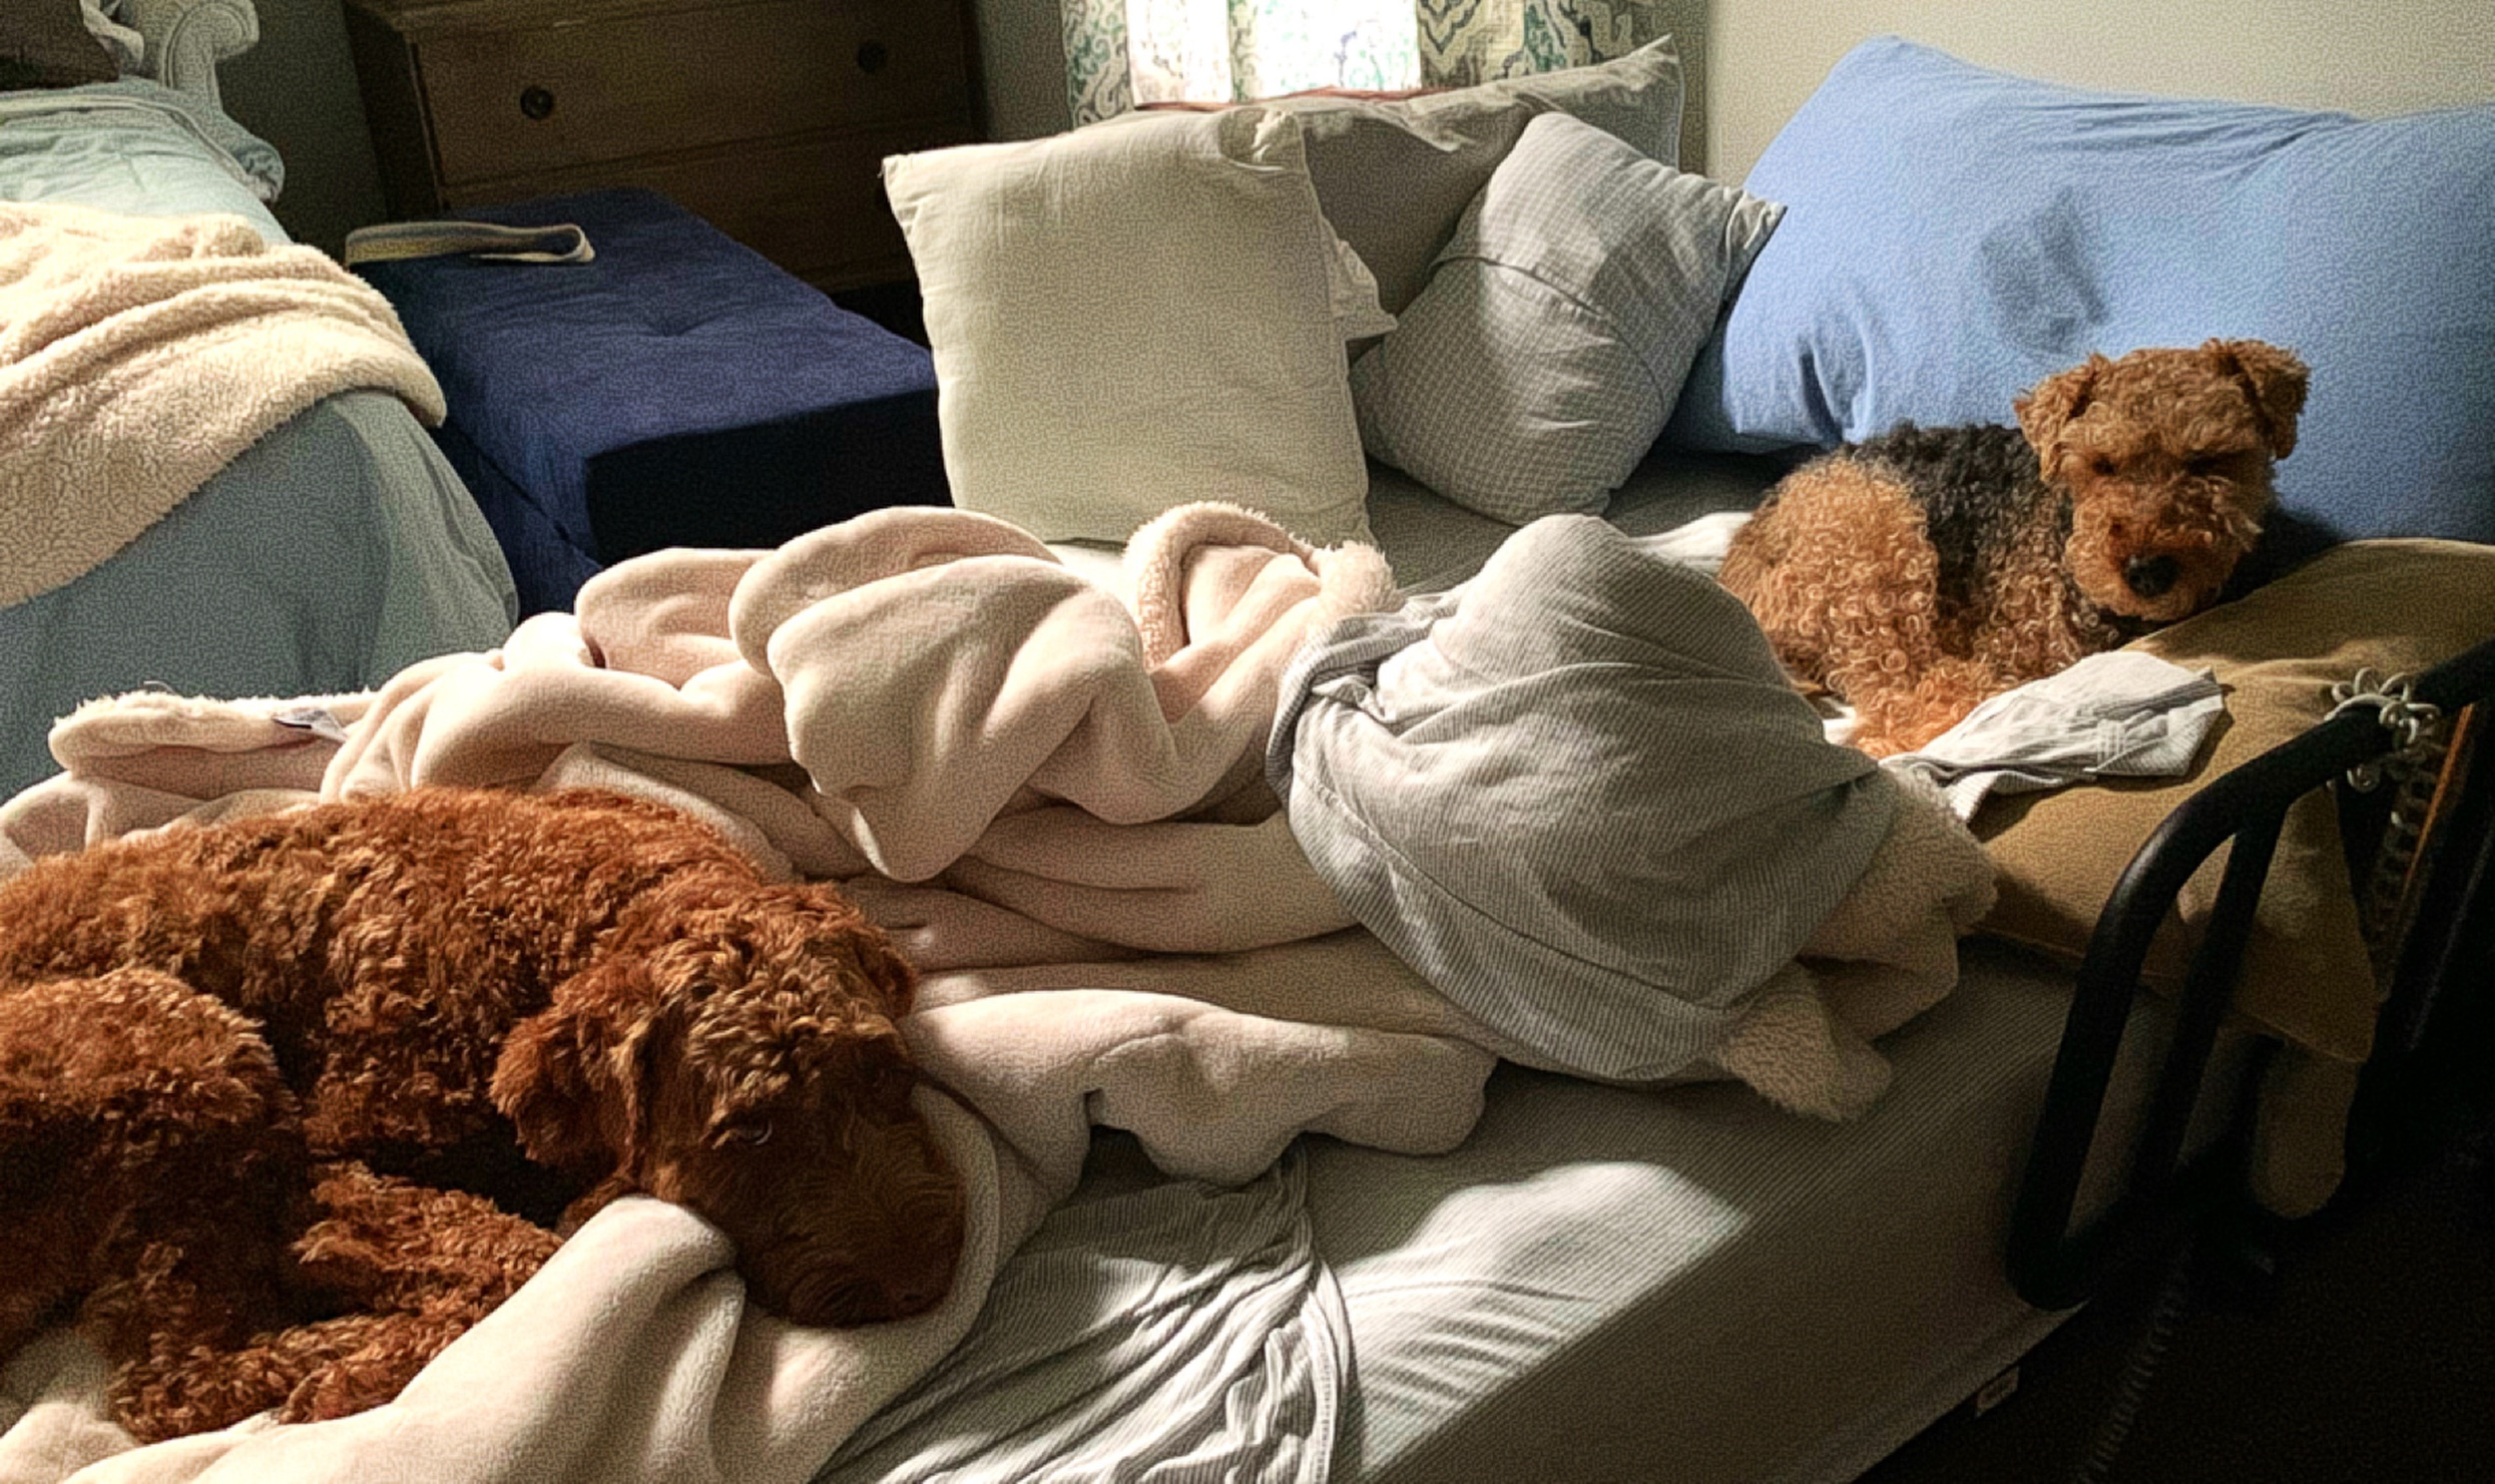 August 26, 2019 - I left my warm, comfy nest of a bed for just a minute this morning…and this is what I returned to…